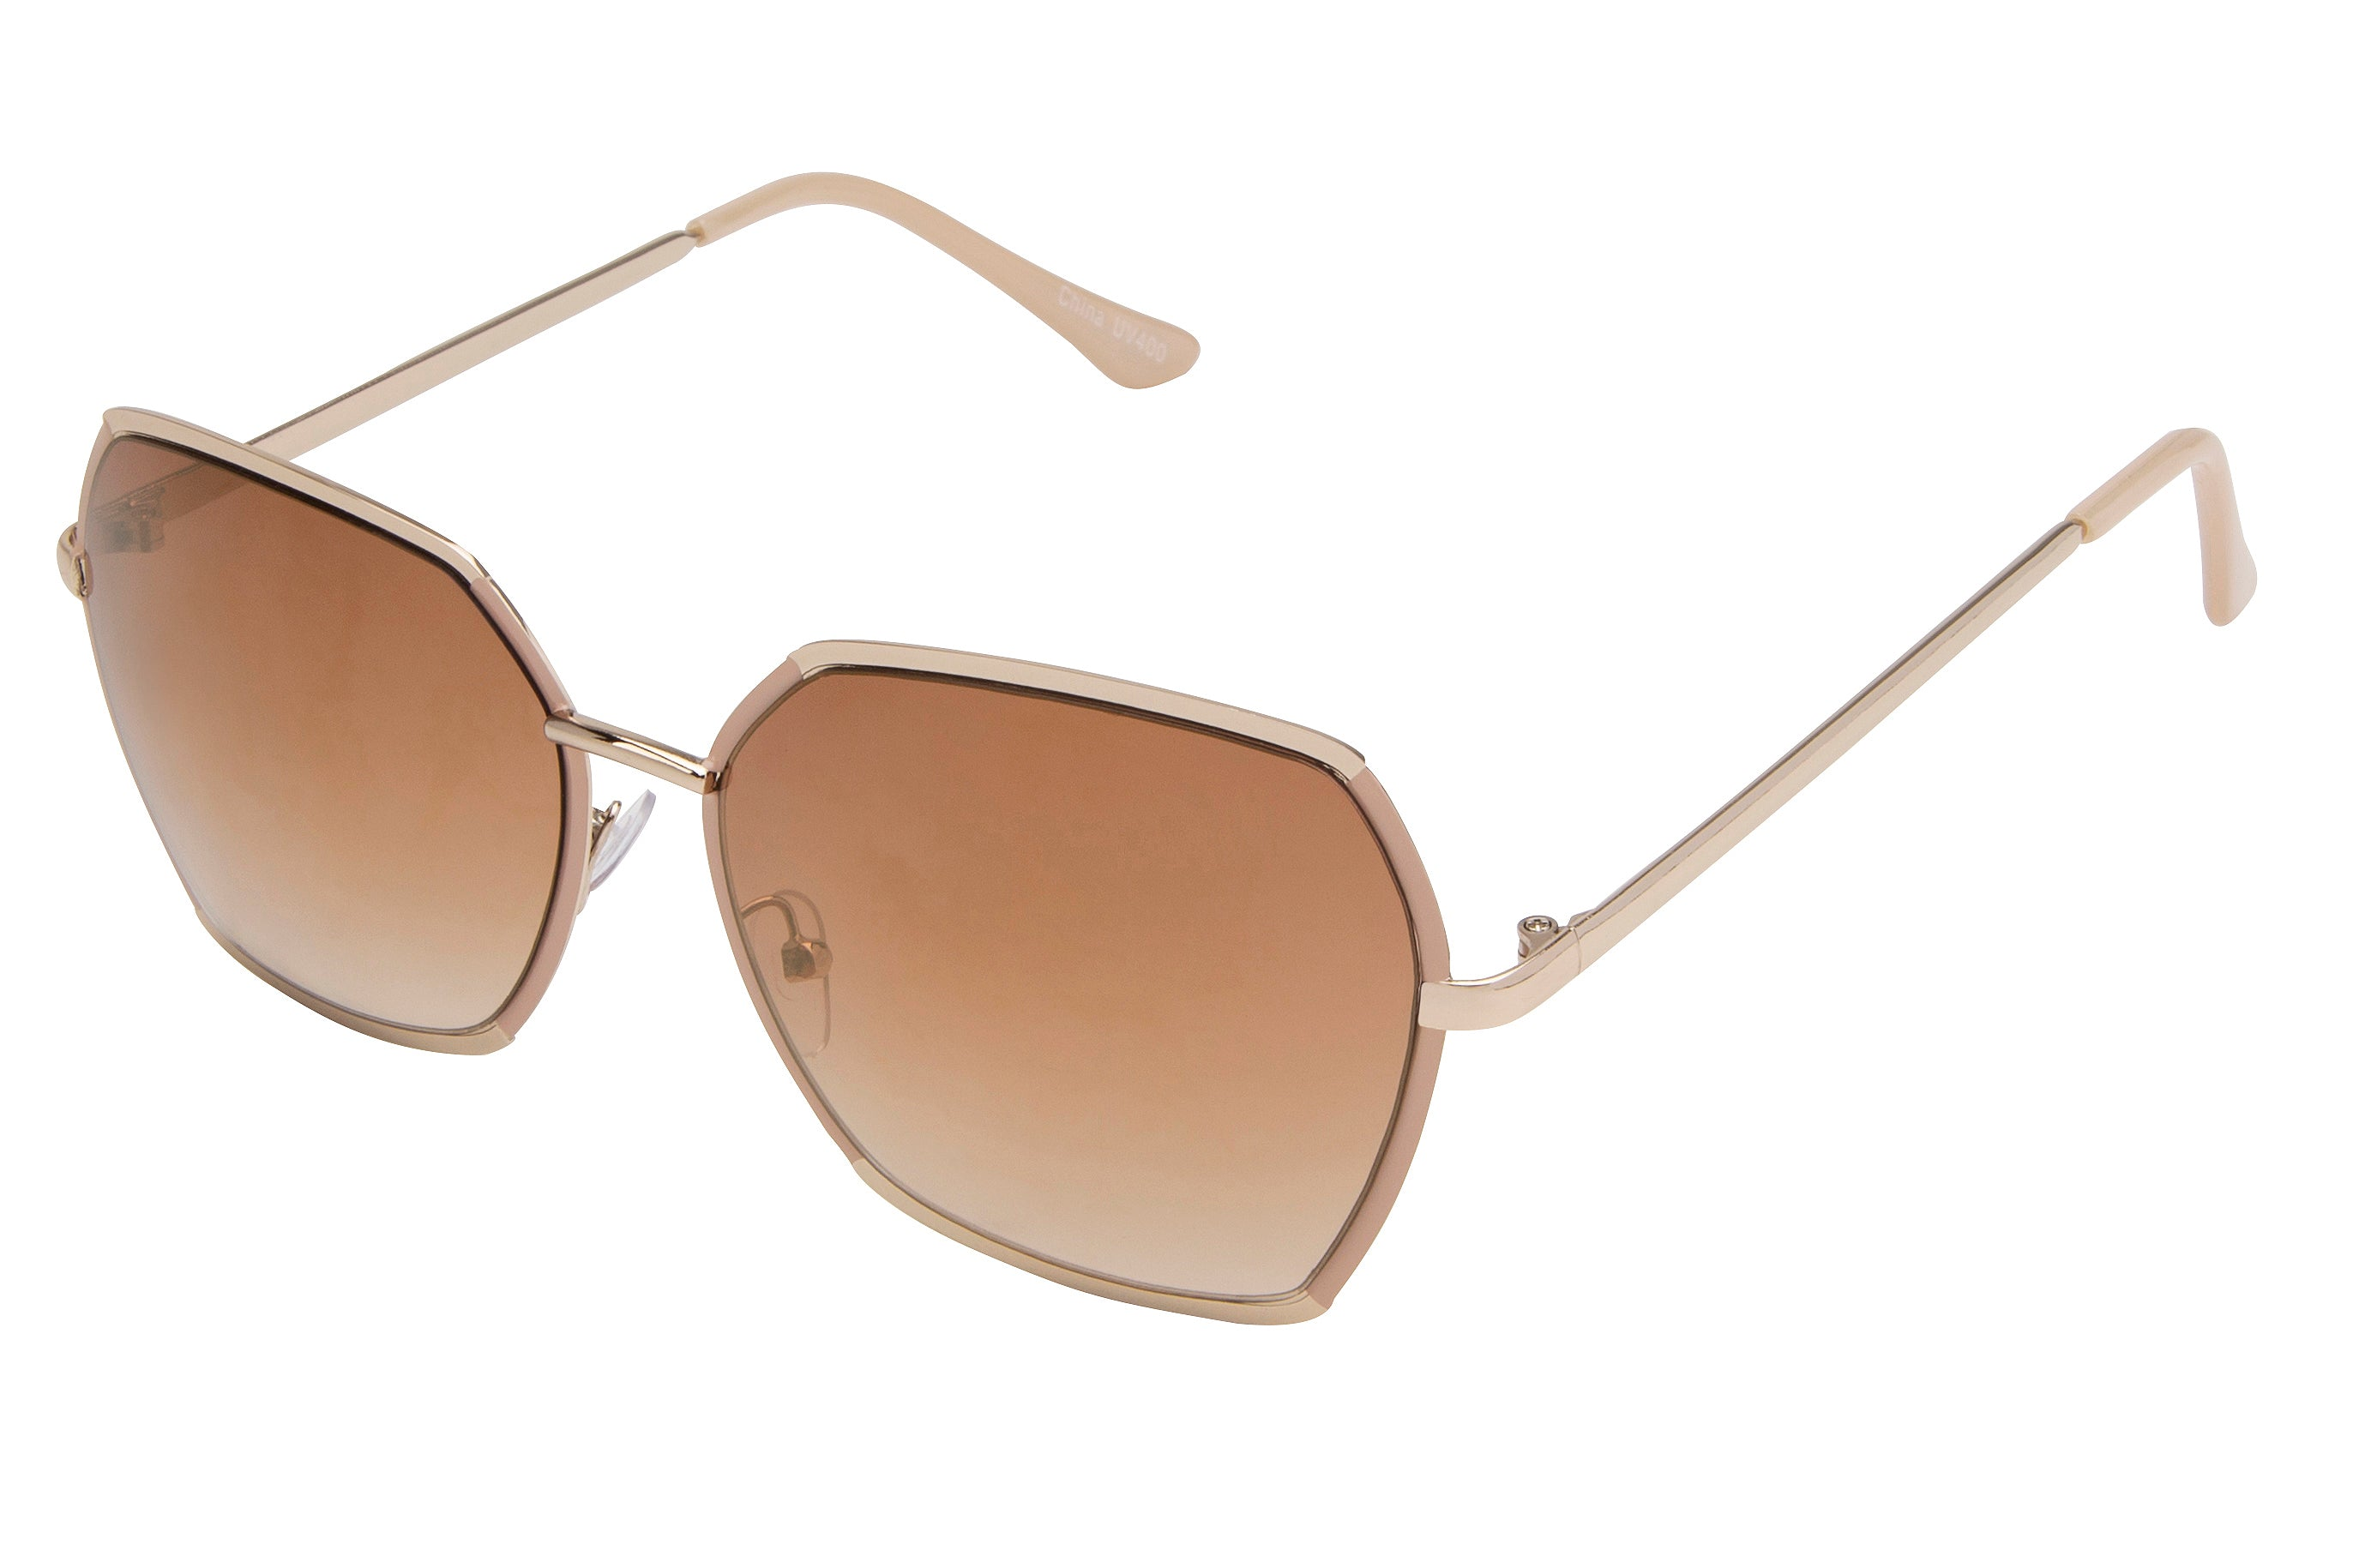 66153 - Vox Women's Metal Fashion Sunglasses